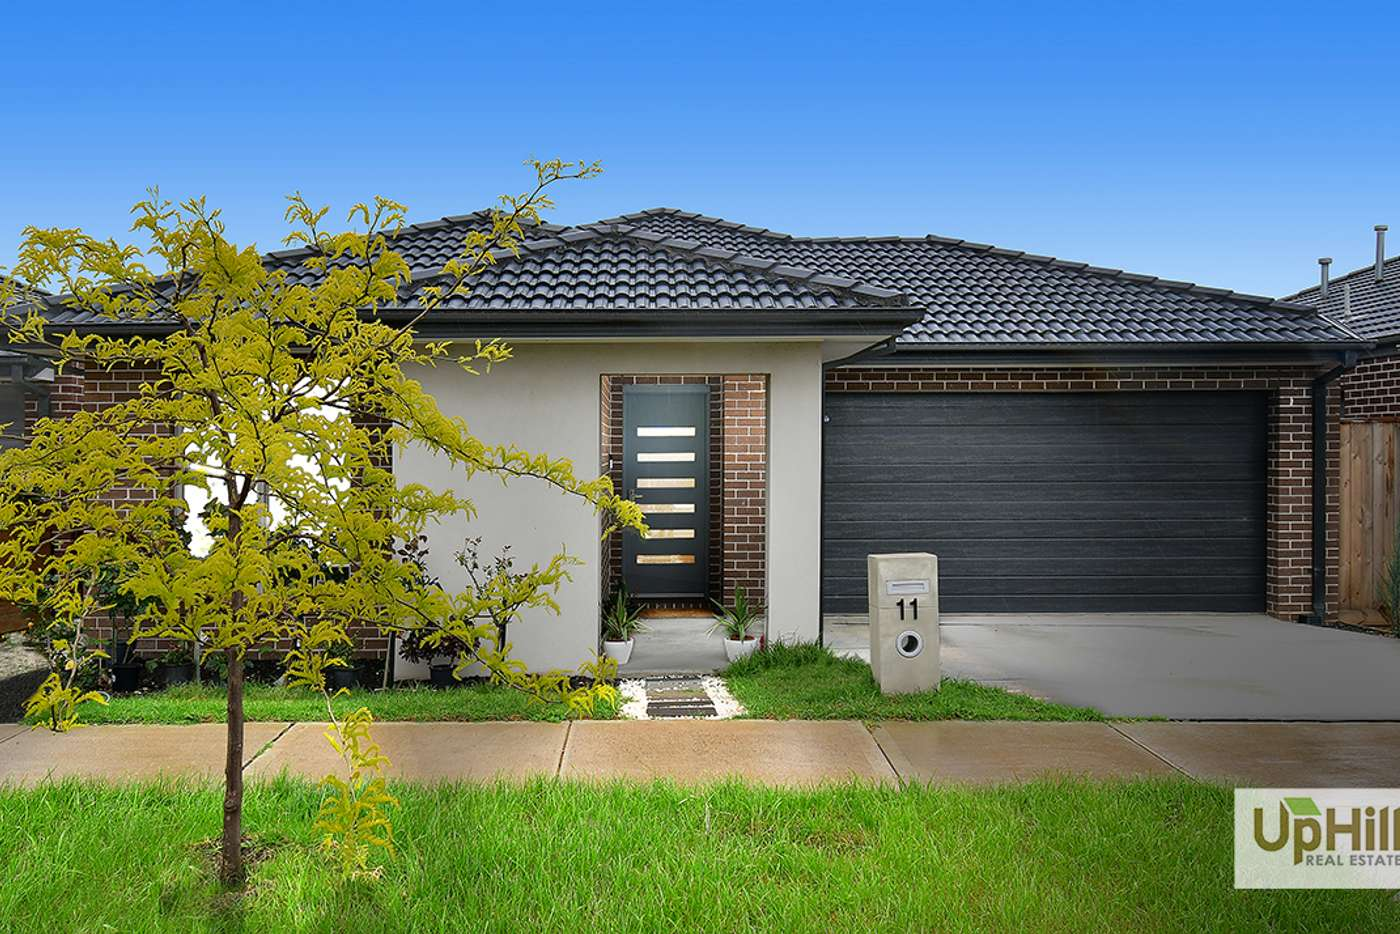 Main view of Homely house listing, 11 Great Banjo Street, Clyde North VIC 3978